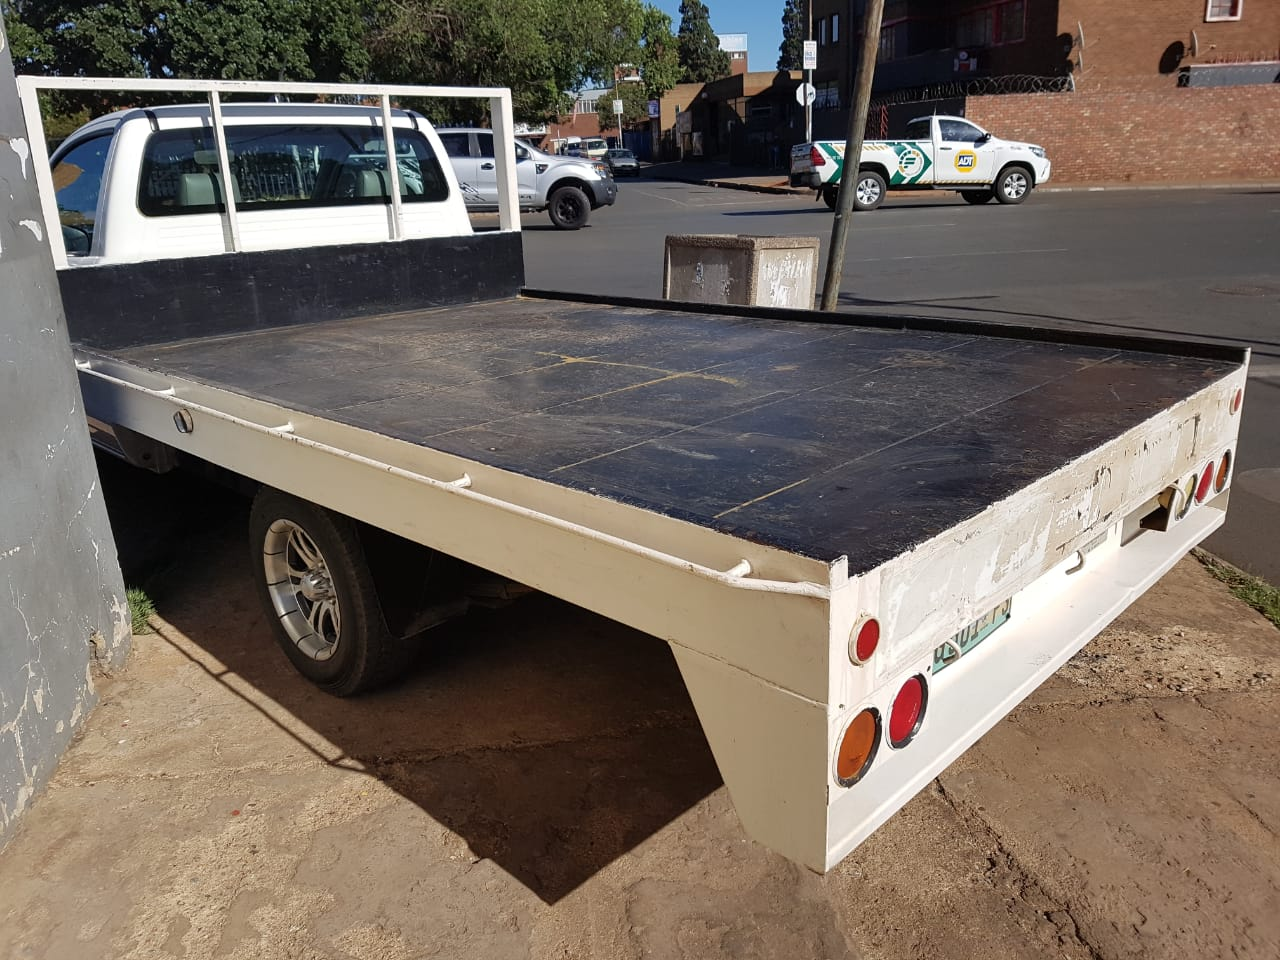 Toyota Hilux 2011 Flat Bed Load Bin For Sale